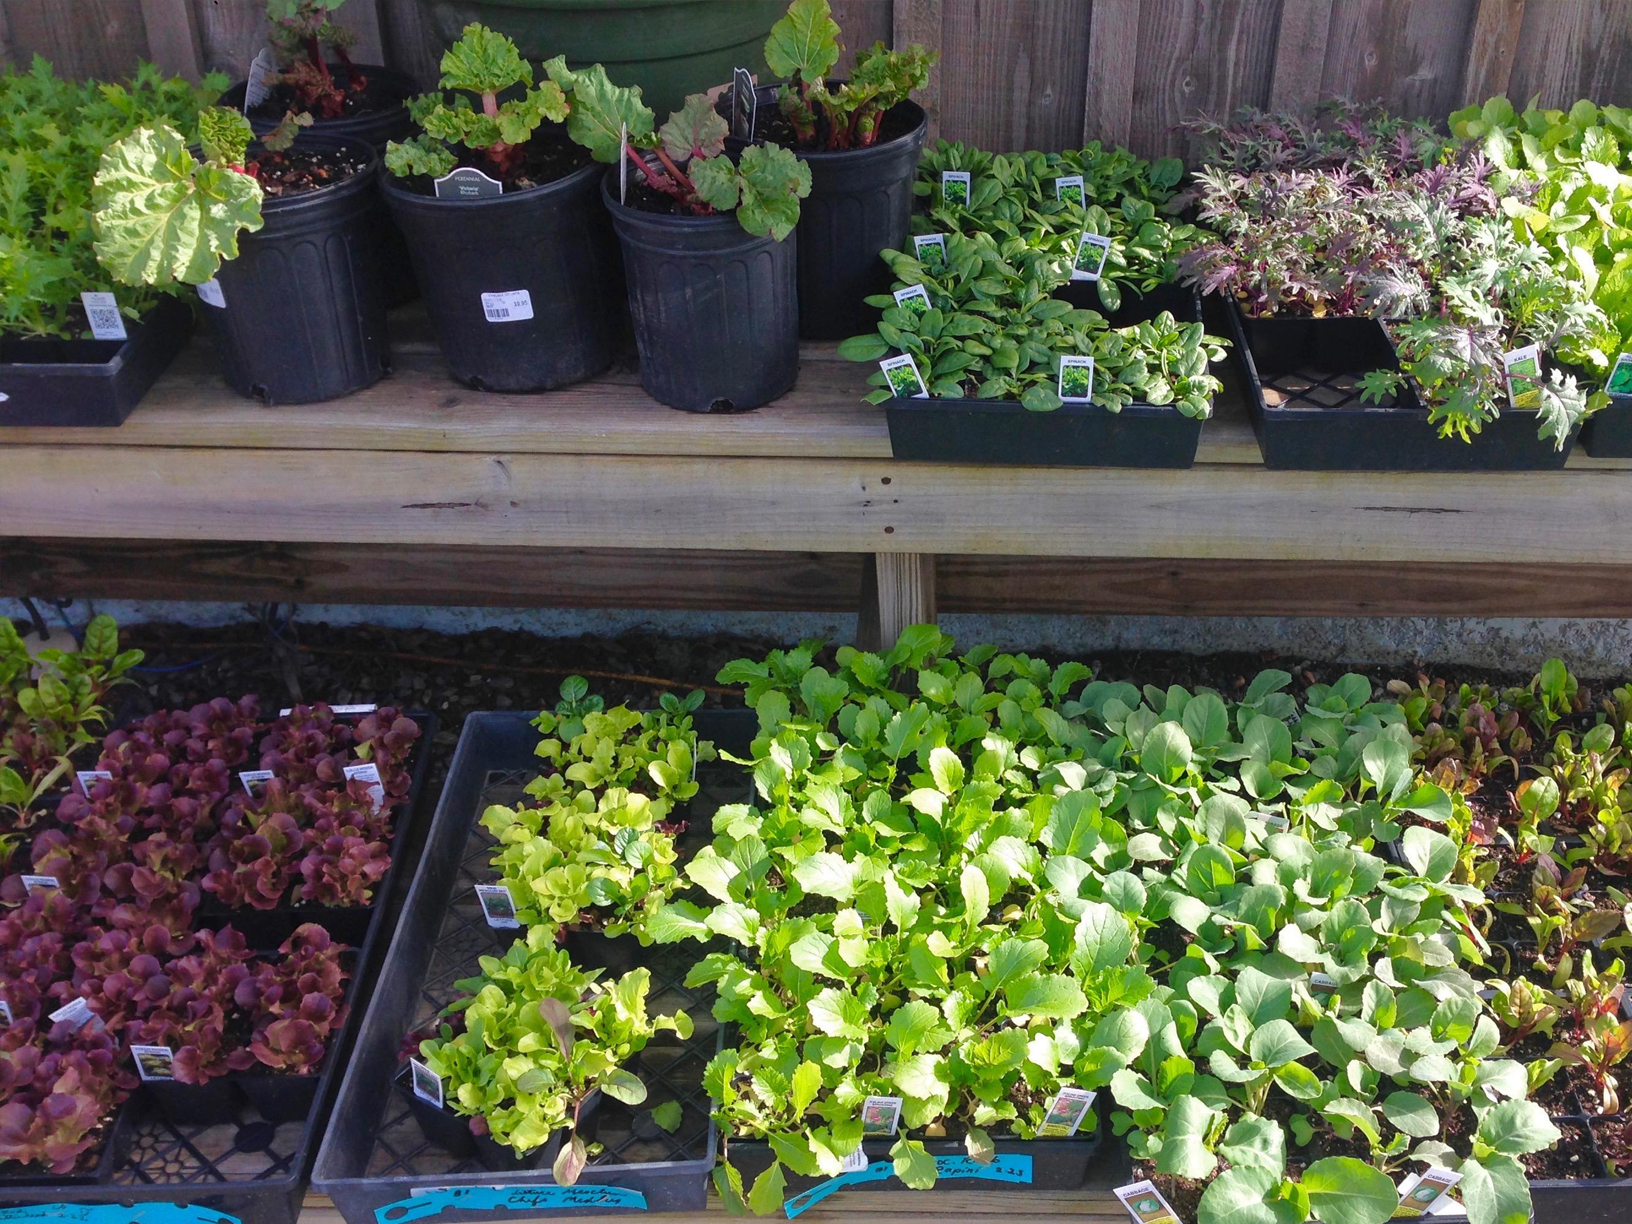 Various early greens and Rhubarb for sale at the Herb House at Vineyard Gardens